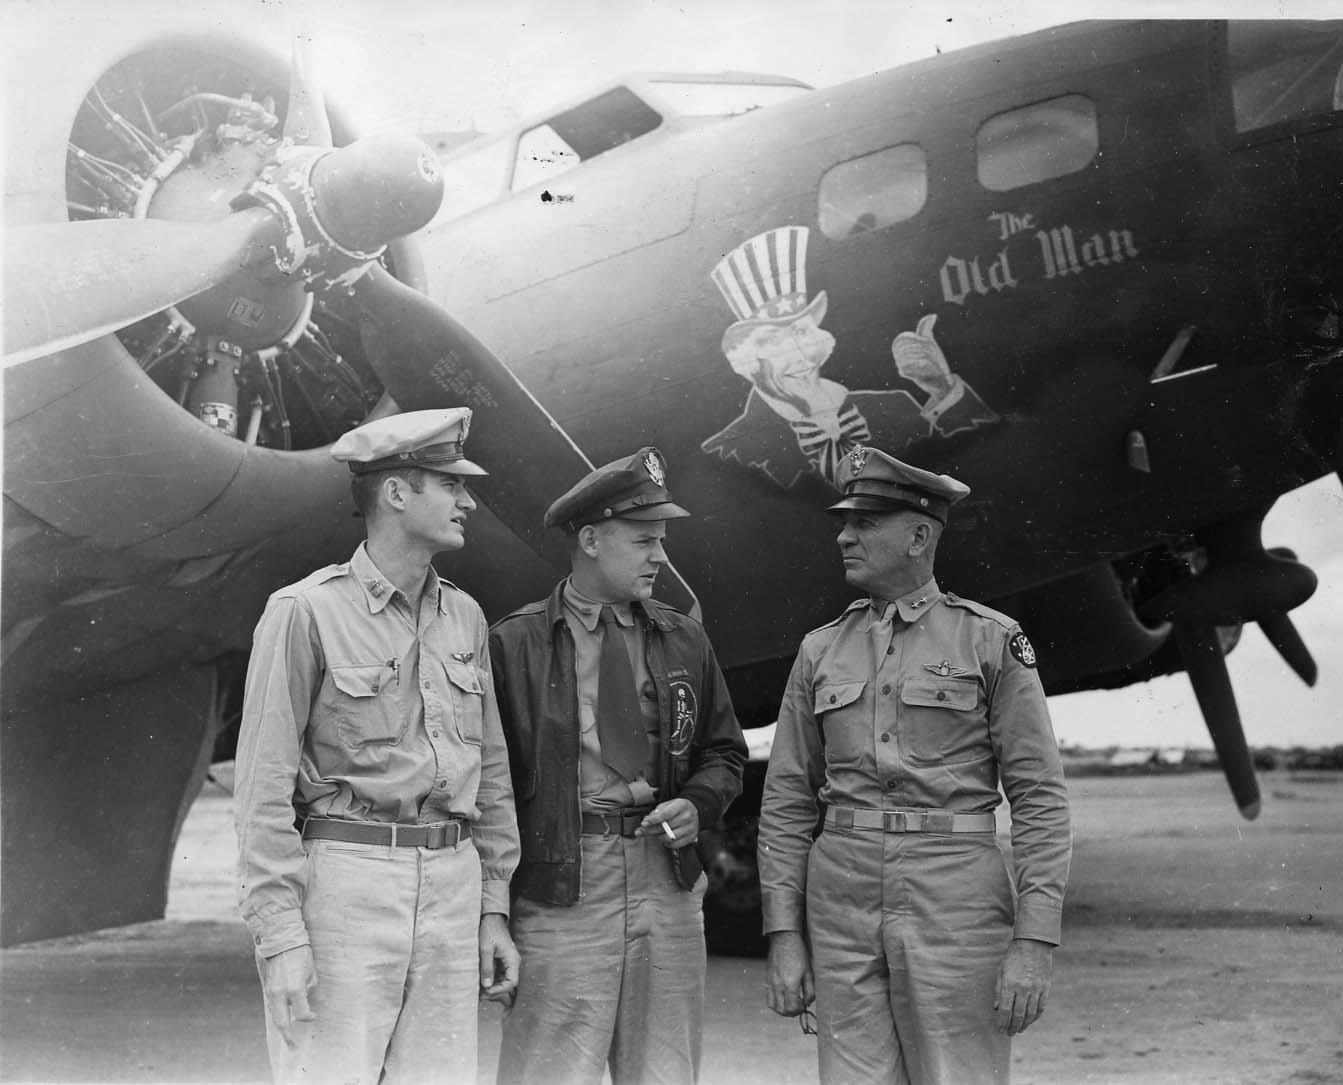 The Old Man - B17 - 43rd Bomb Group - 64th Squadron - PH00005787 (Frederick German Collection)